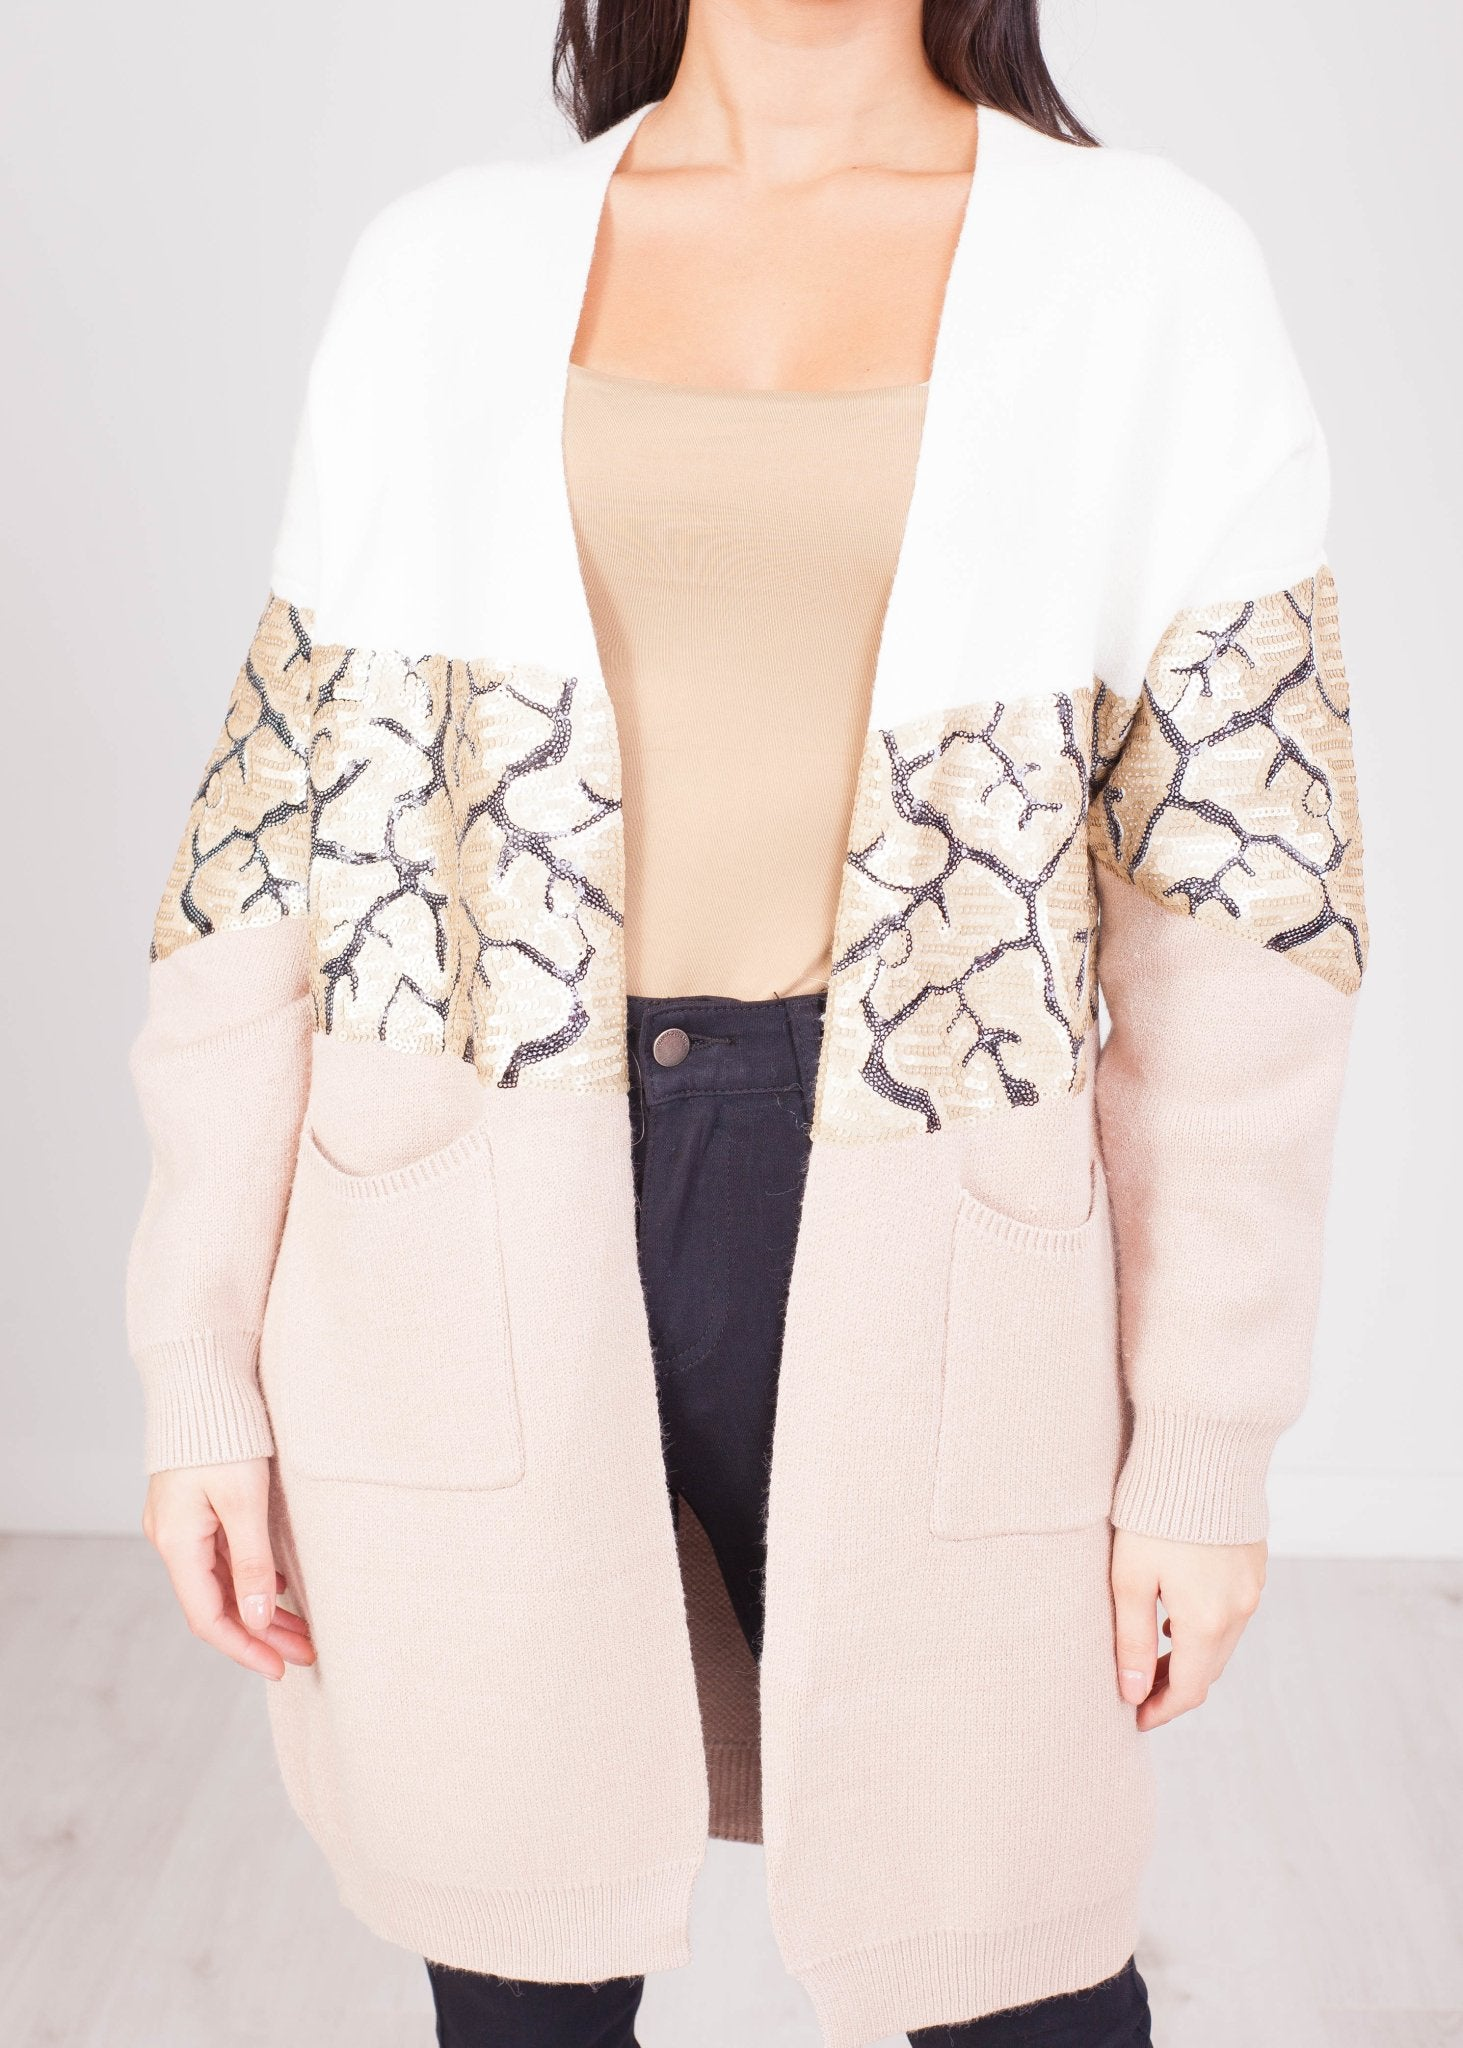 Priya Neutral & Sequin Cardigan - The Walk in Wardrobe